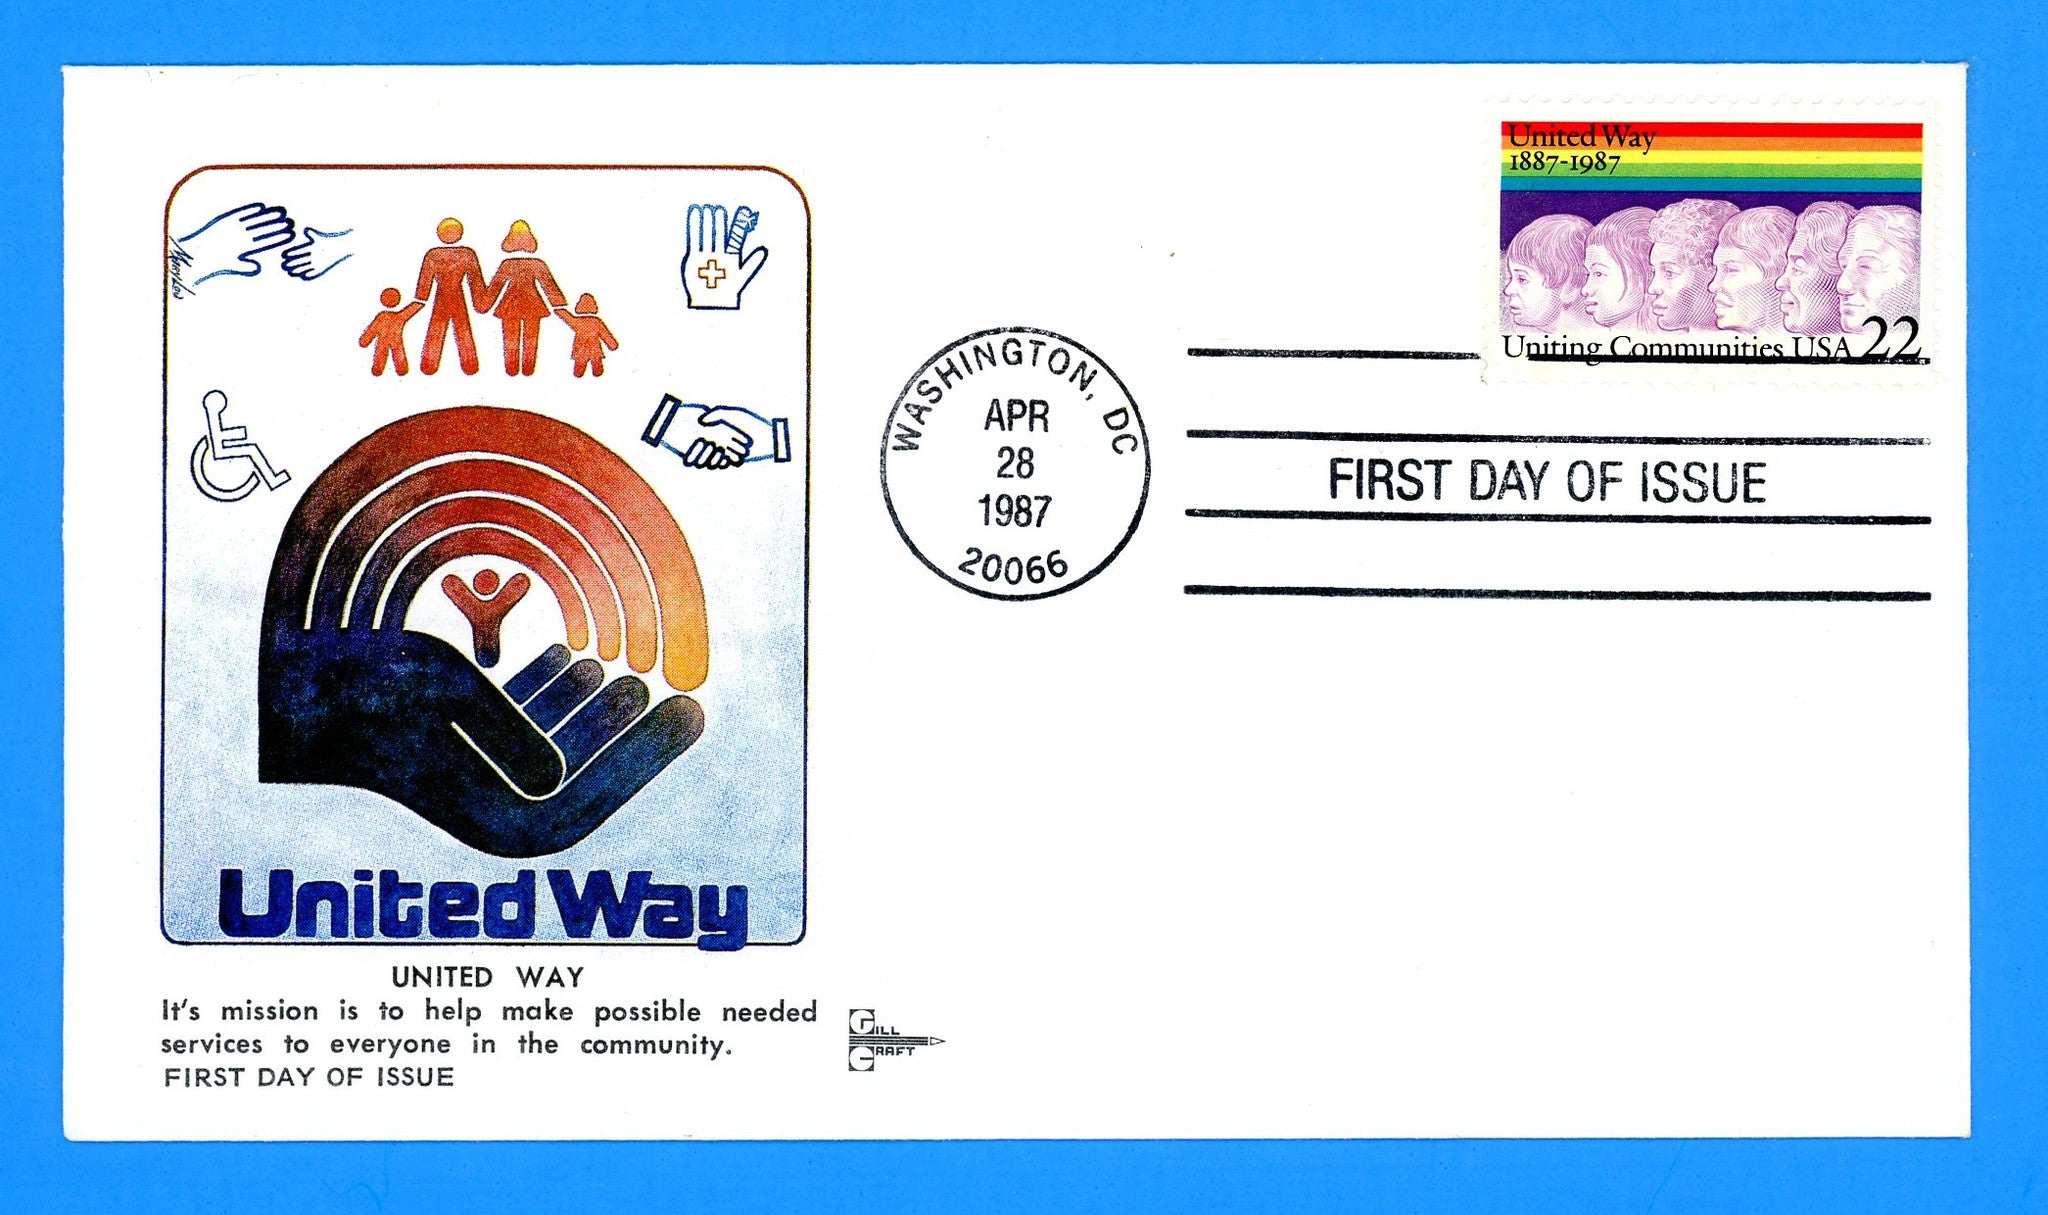 United Way Centennial First Day Cover by Gill Craft